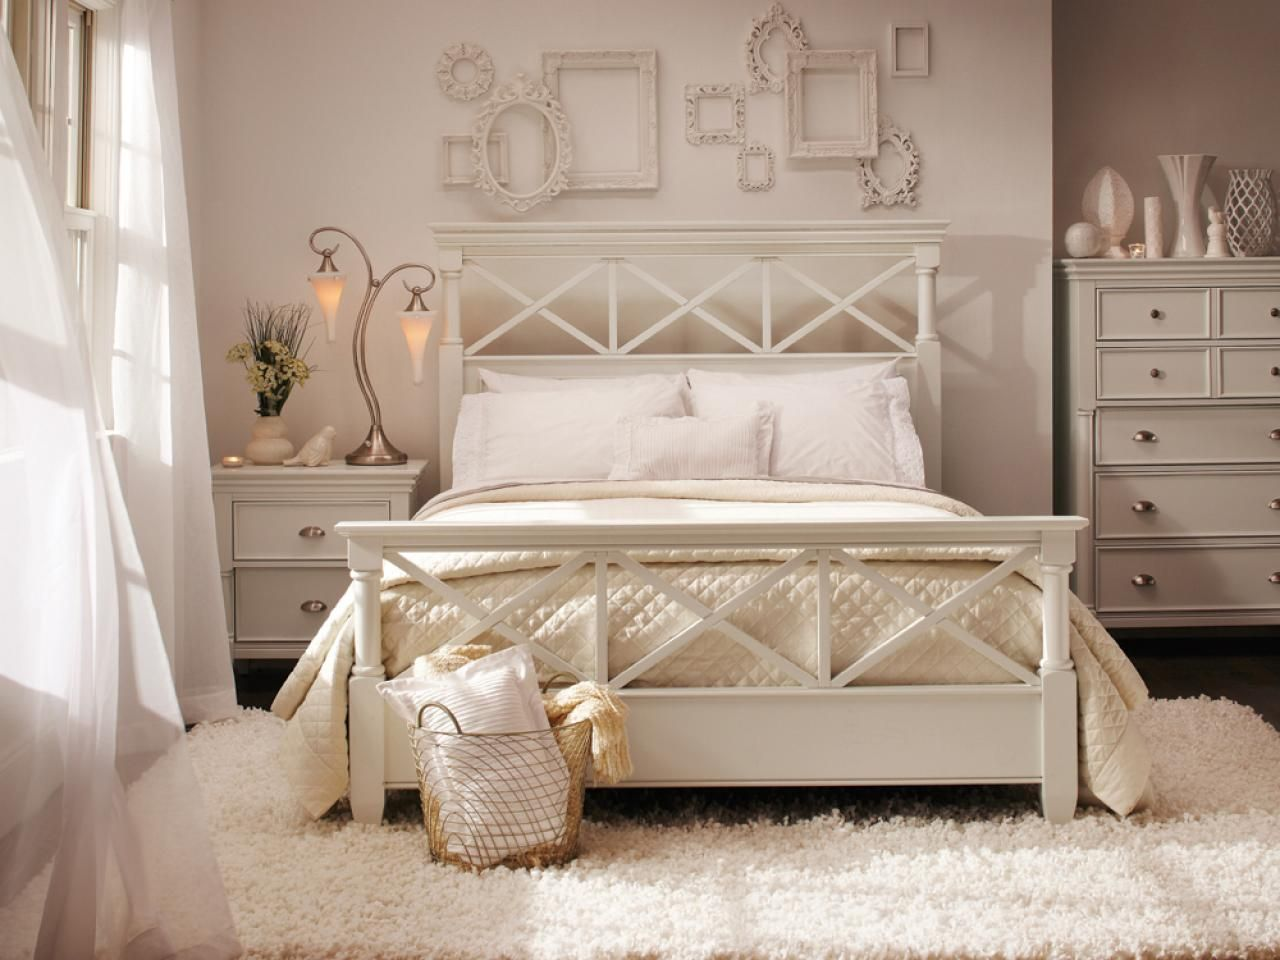 Find the best of Raymour & Flanigan from HGTV Bedroom